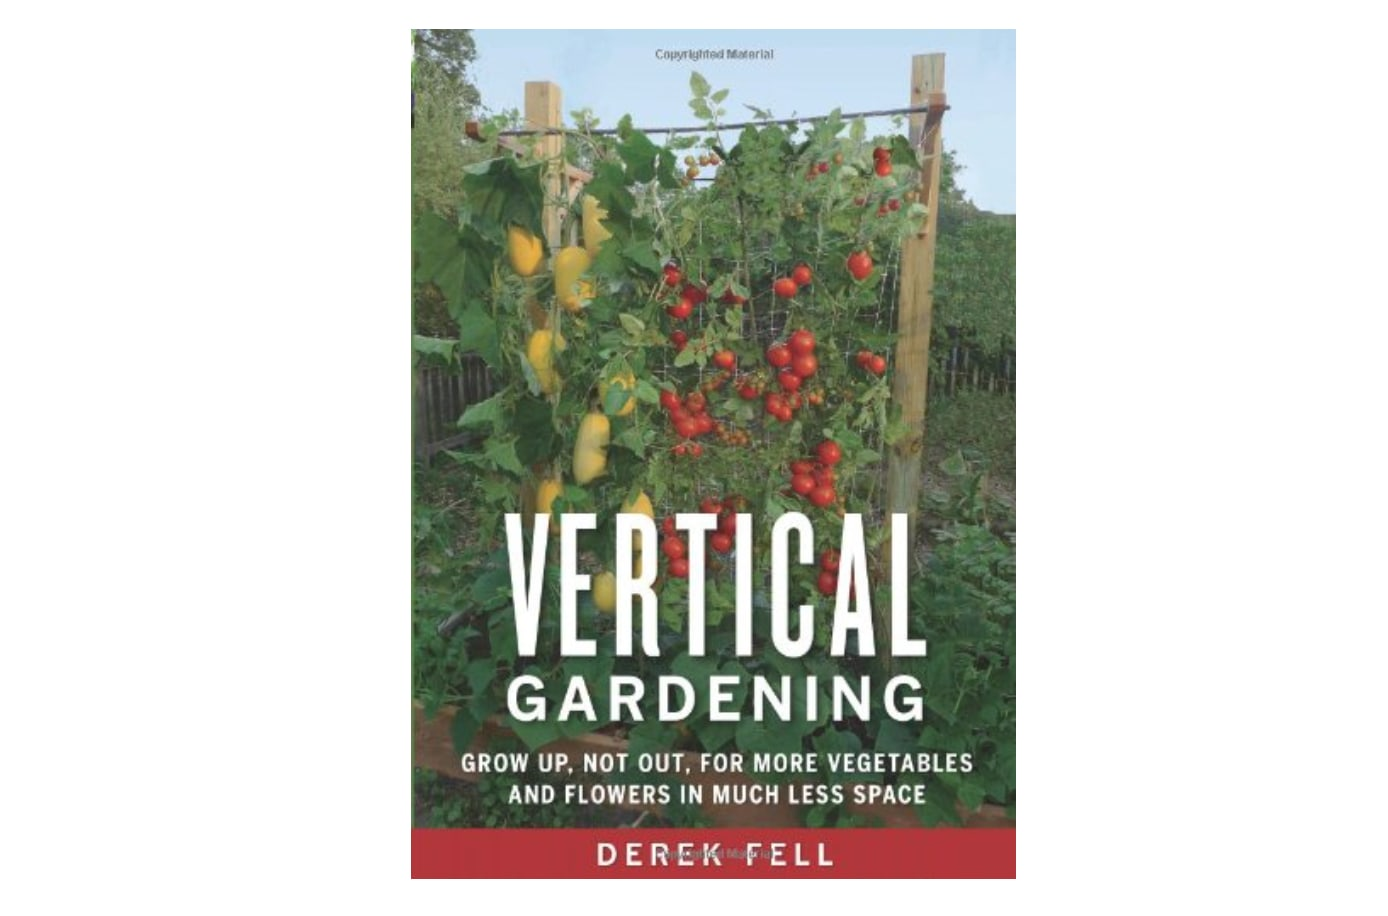 Vertical Gardening Grow Up Not Out For More Vegetables And Flowers In Much Less Space